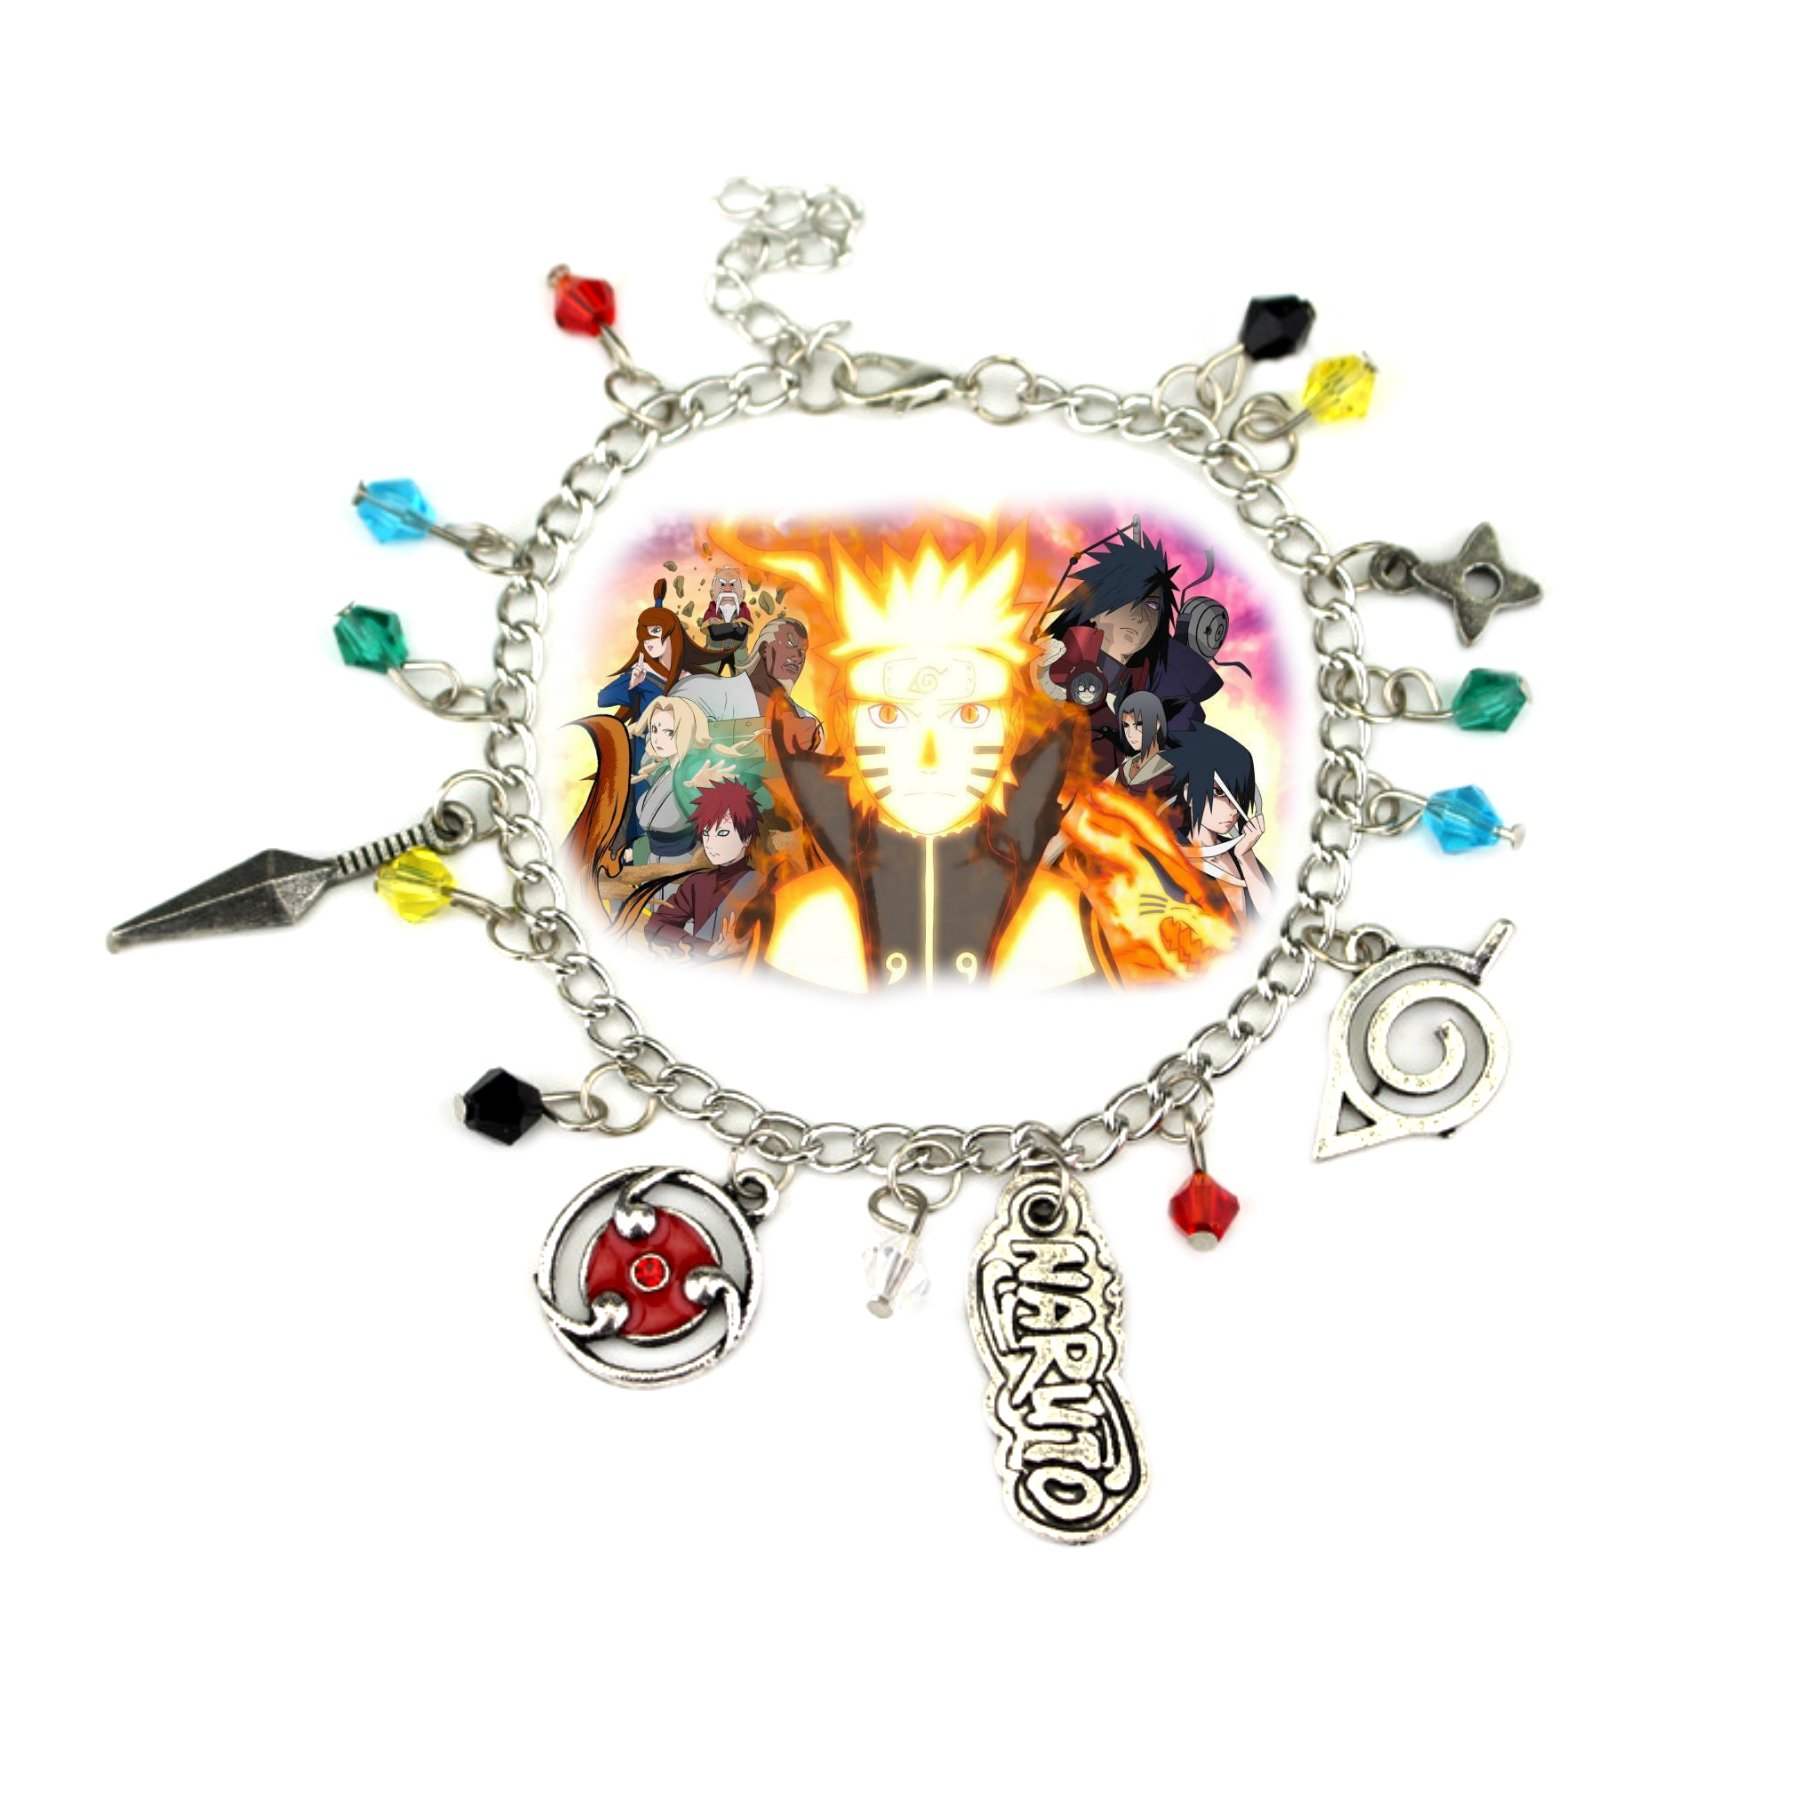 Naruto 5 Charms Lobster Clasp Bracelet in Gift Box by Superheroes